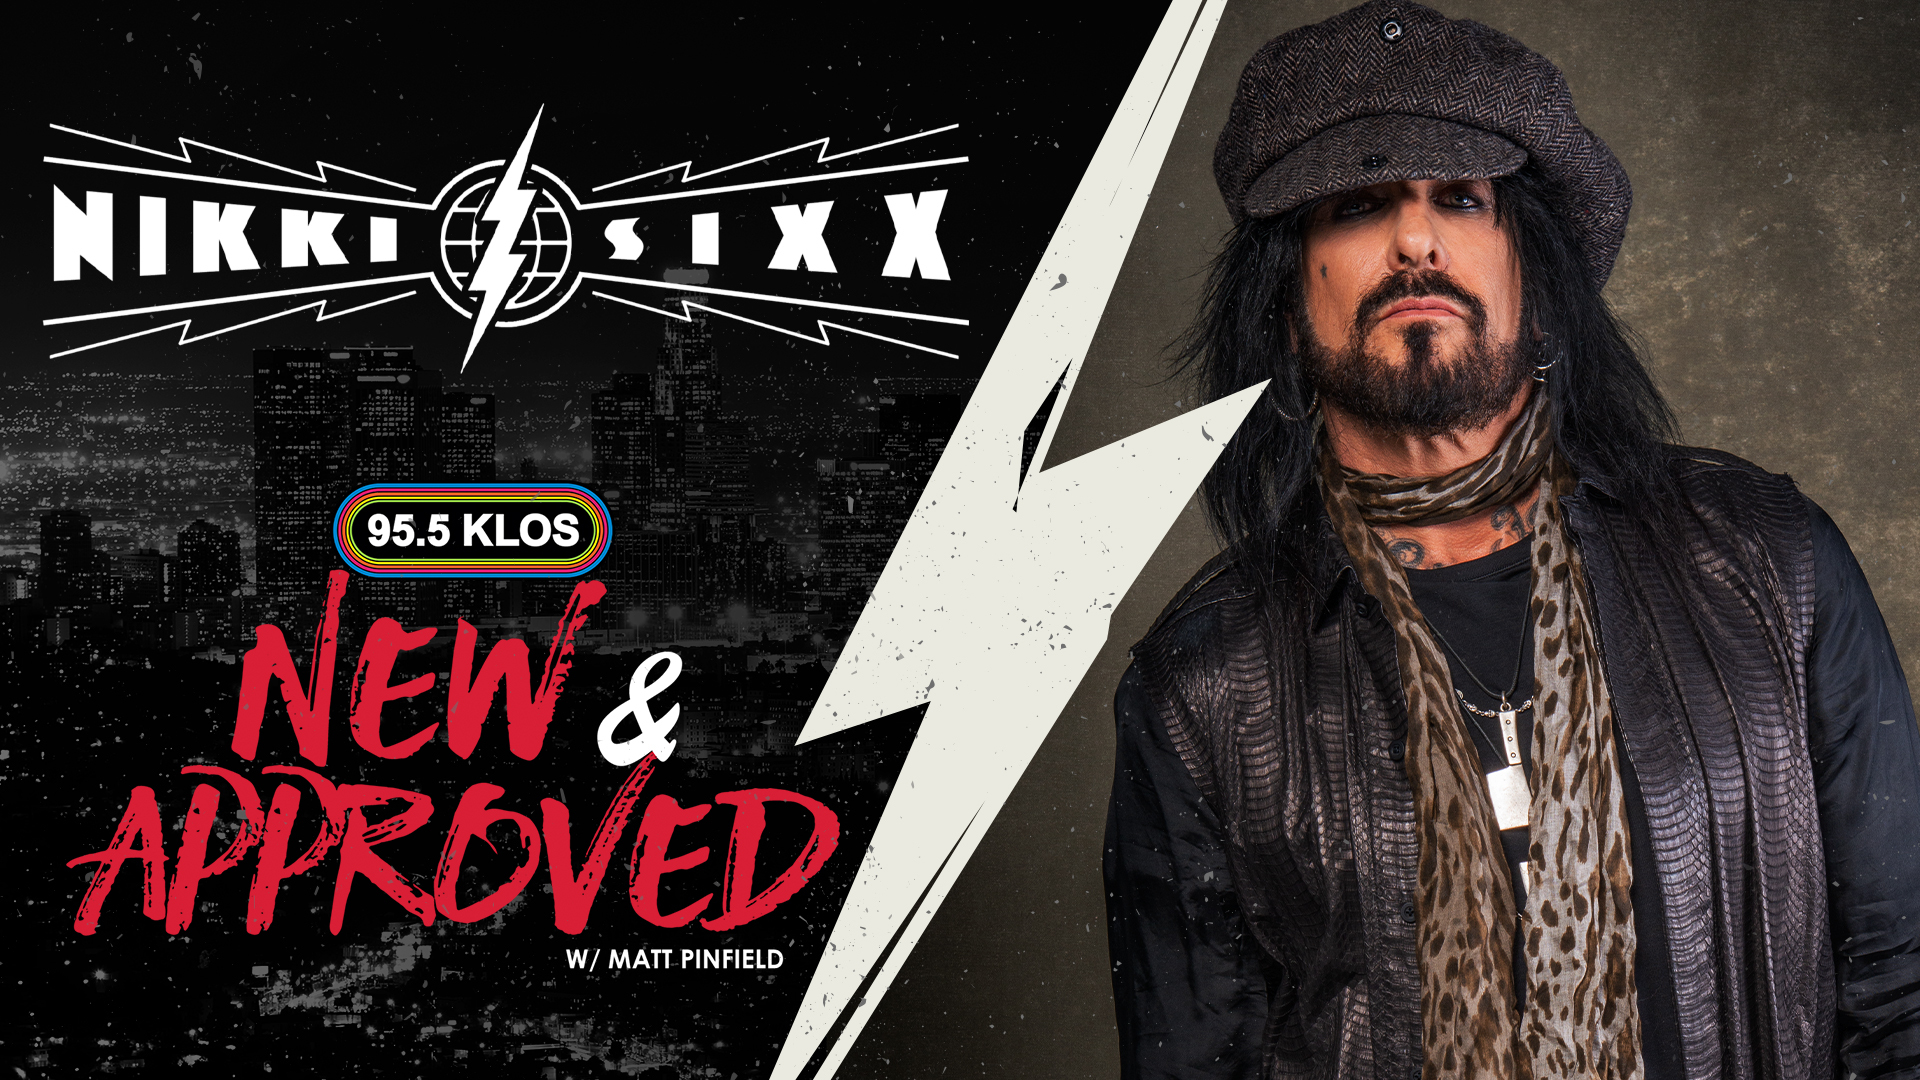 """Video: Nikki Sixx Discusses New Book """"The First 21"""" & Mötley Crüe With Matt Pinfield on """"New & Approved"""""""